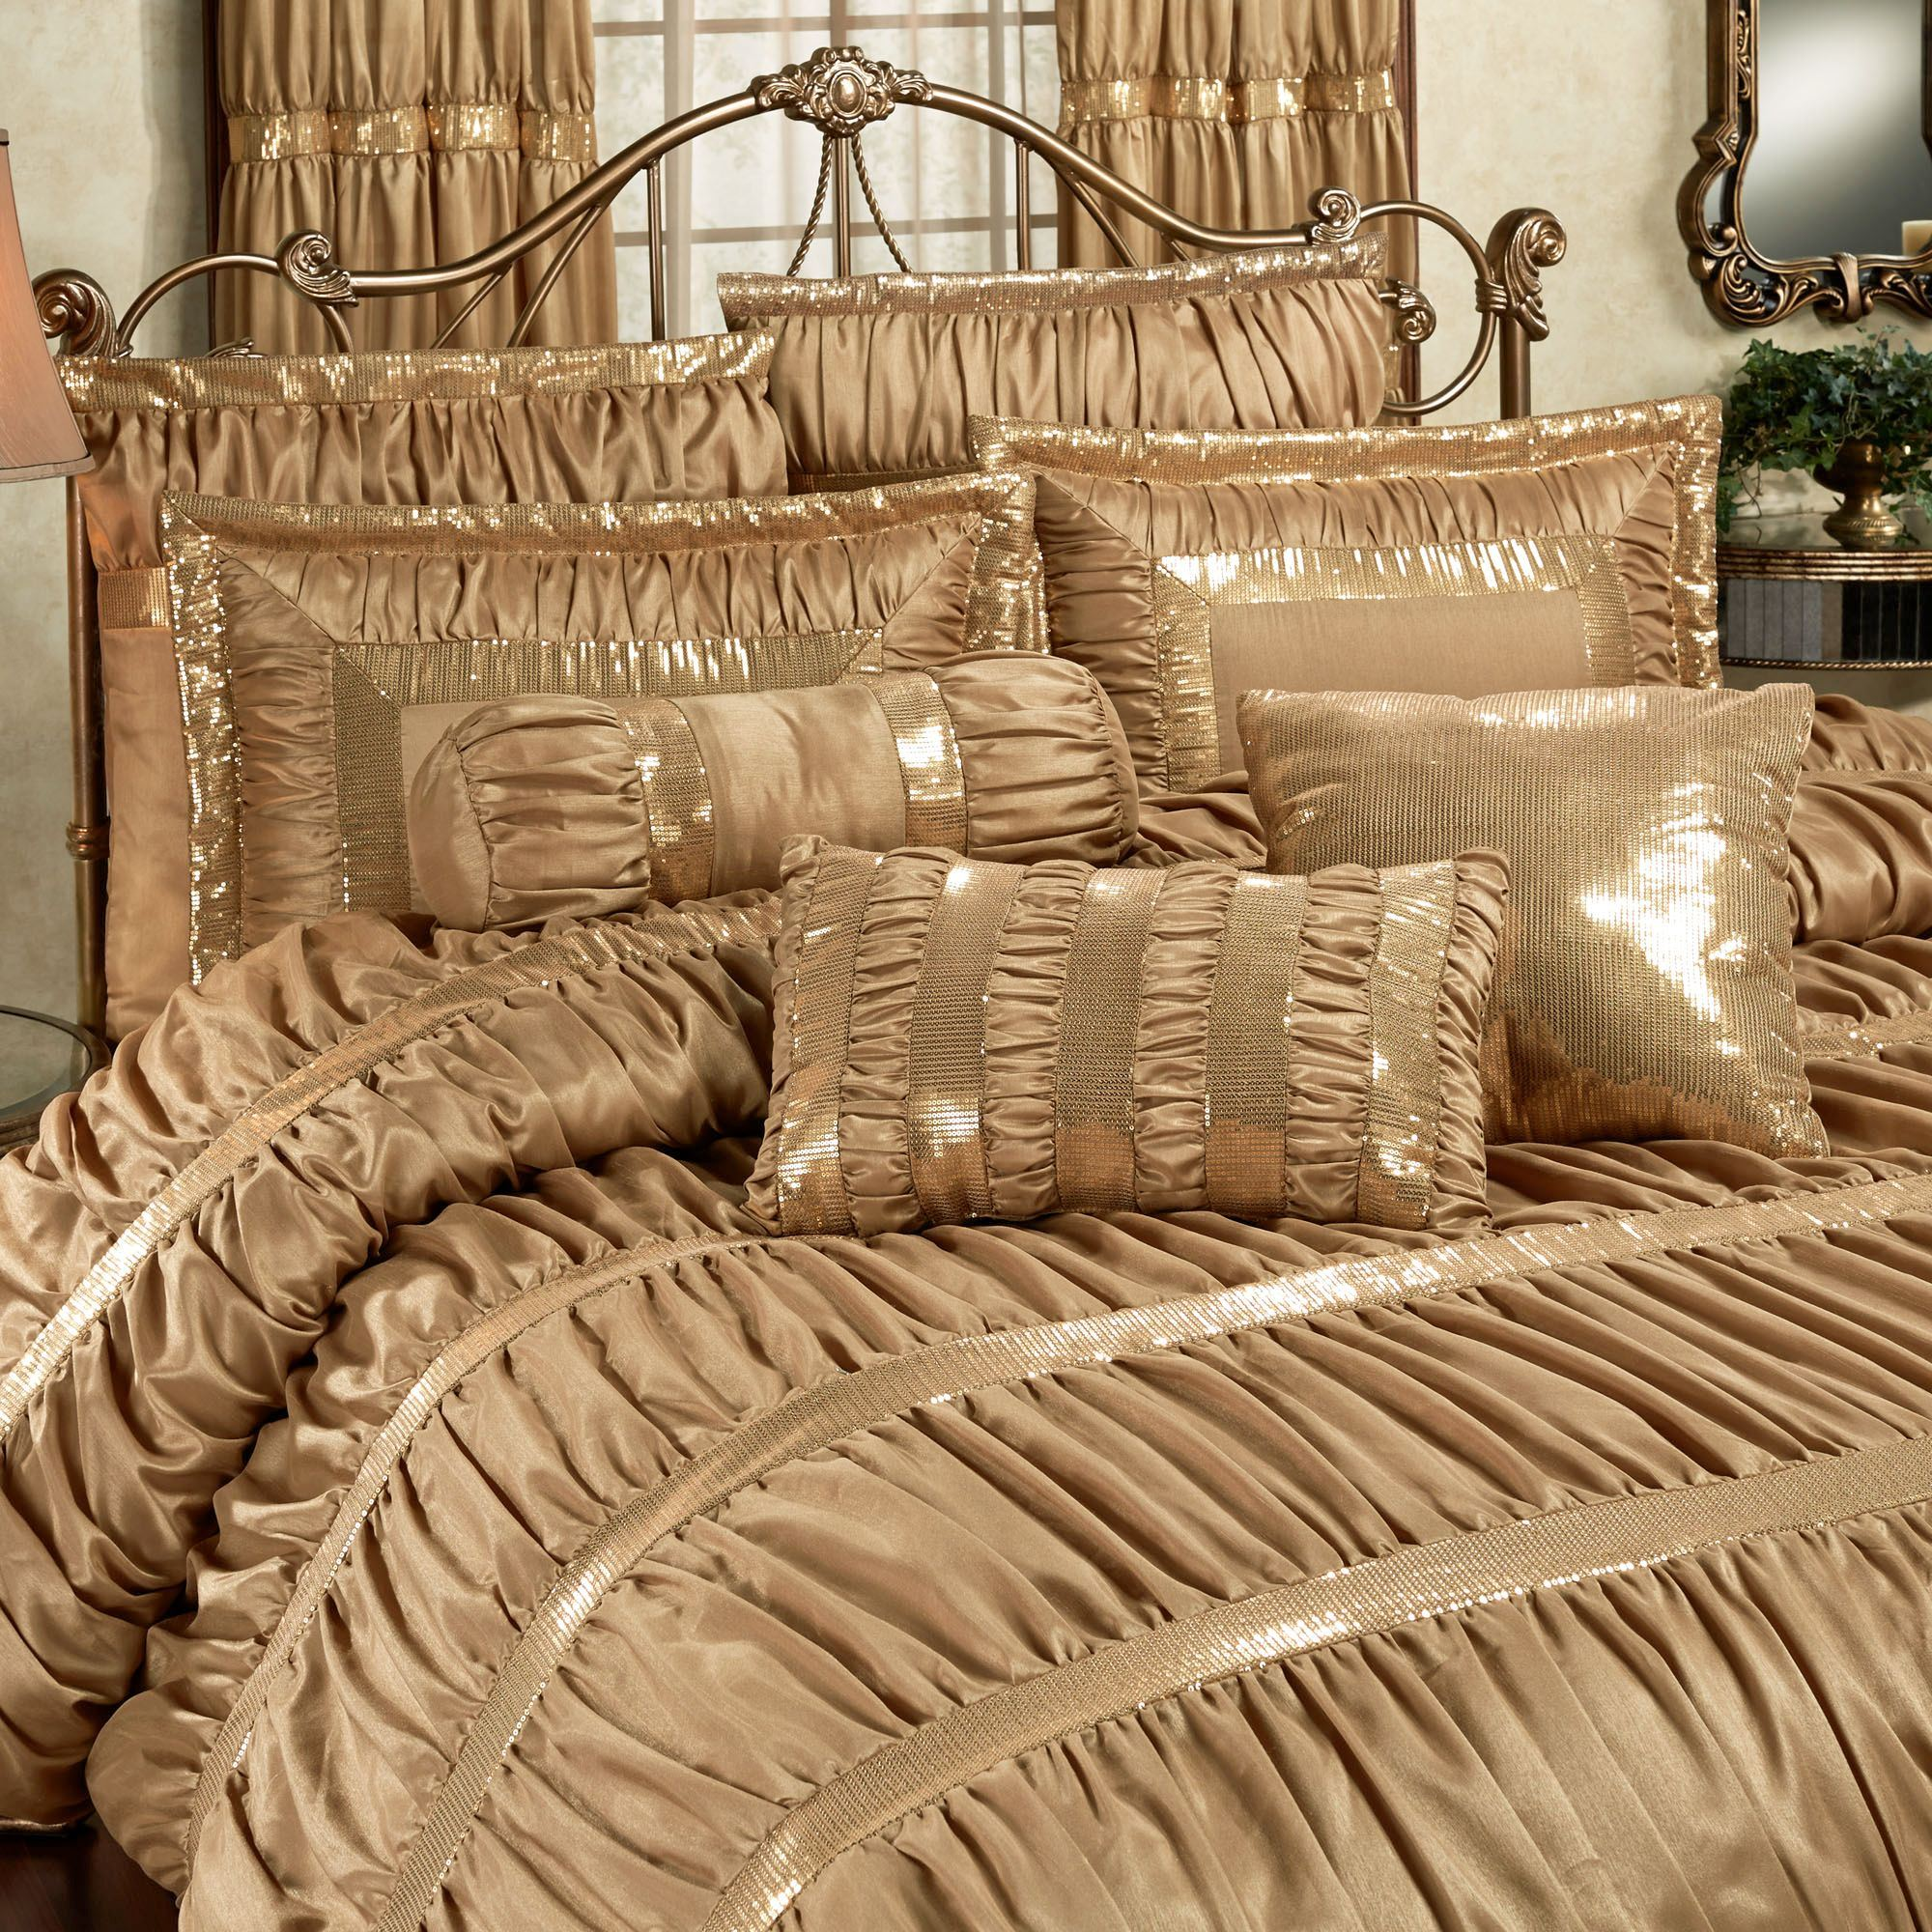 Splendor Shirred Faux Silk Dark Gold Comforter Bedding